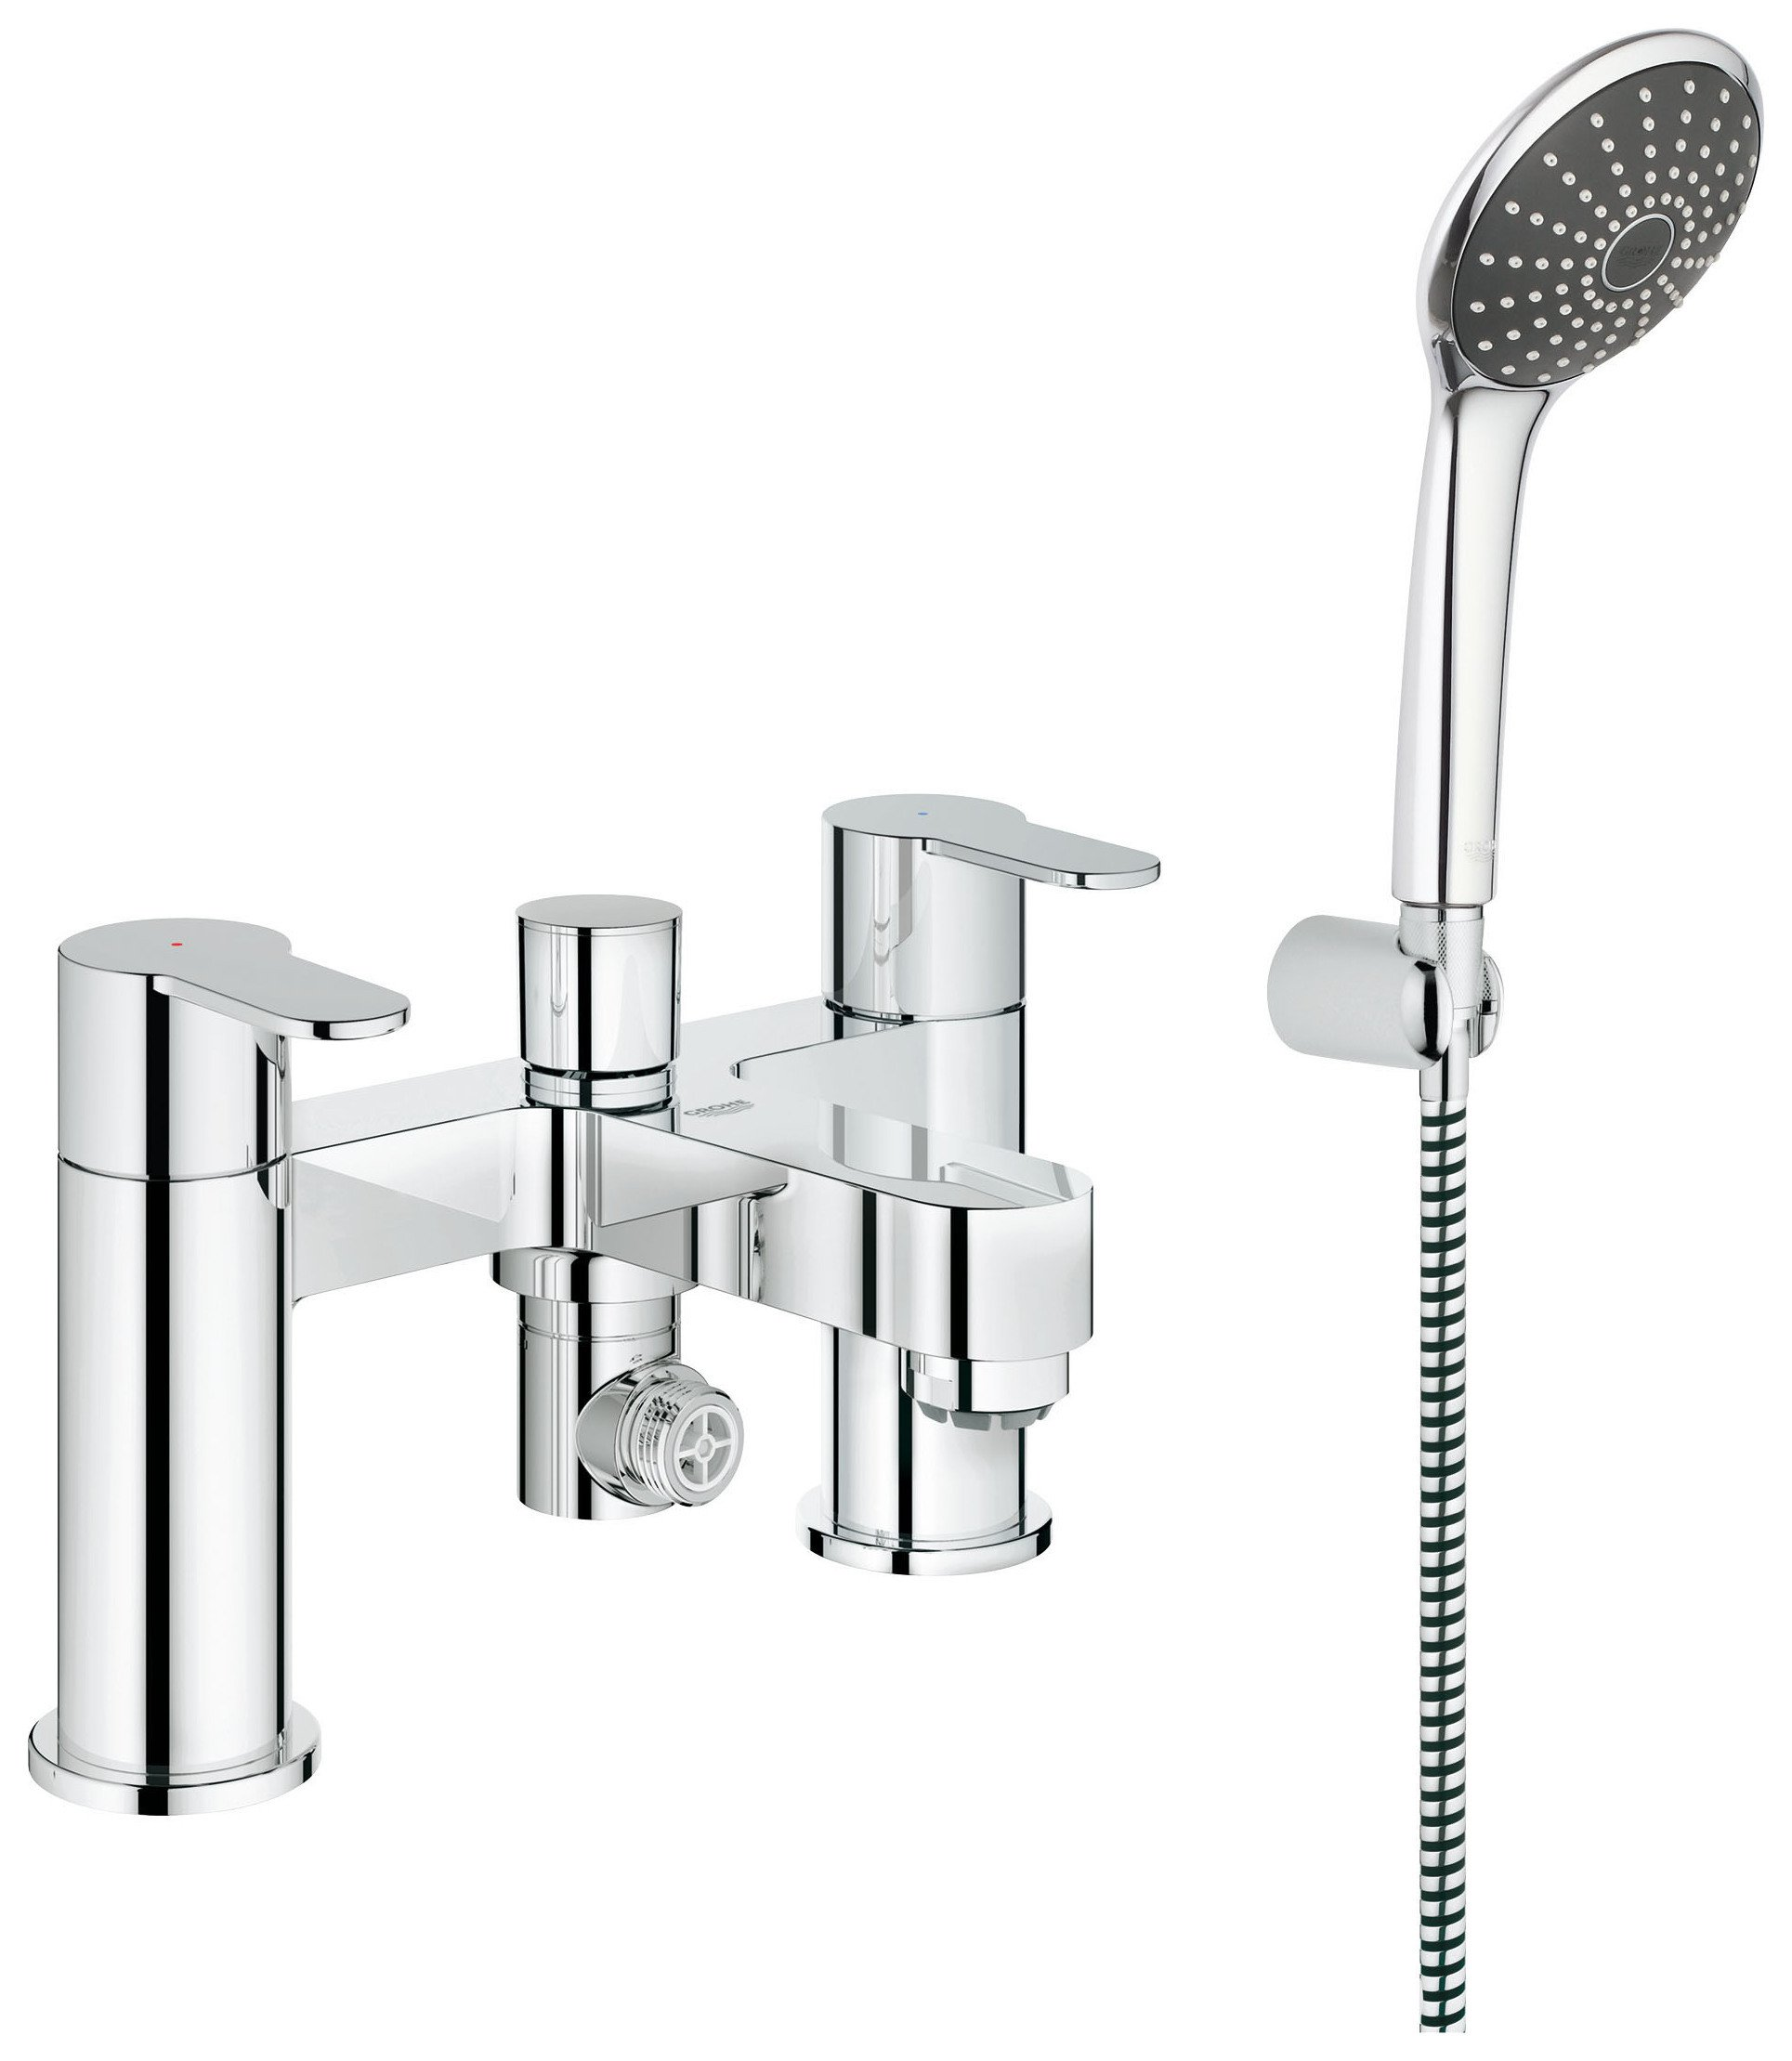 Grohe Wave Cosmopolitan Bath and Shower Mixer Set. | Comfy